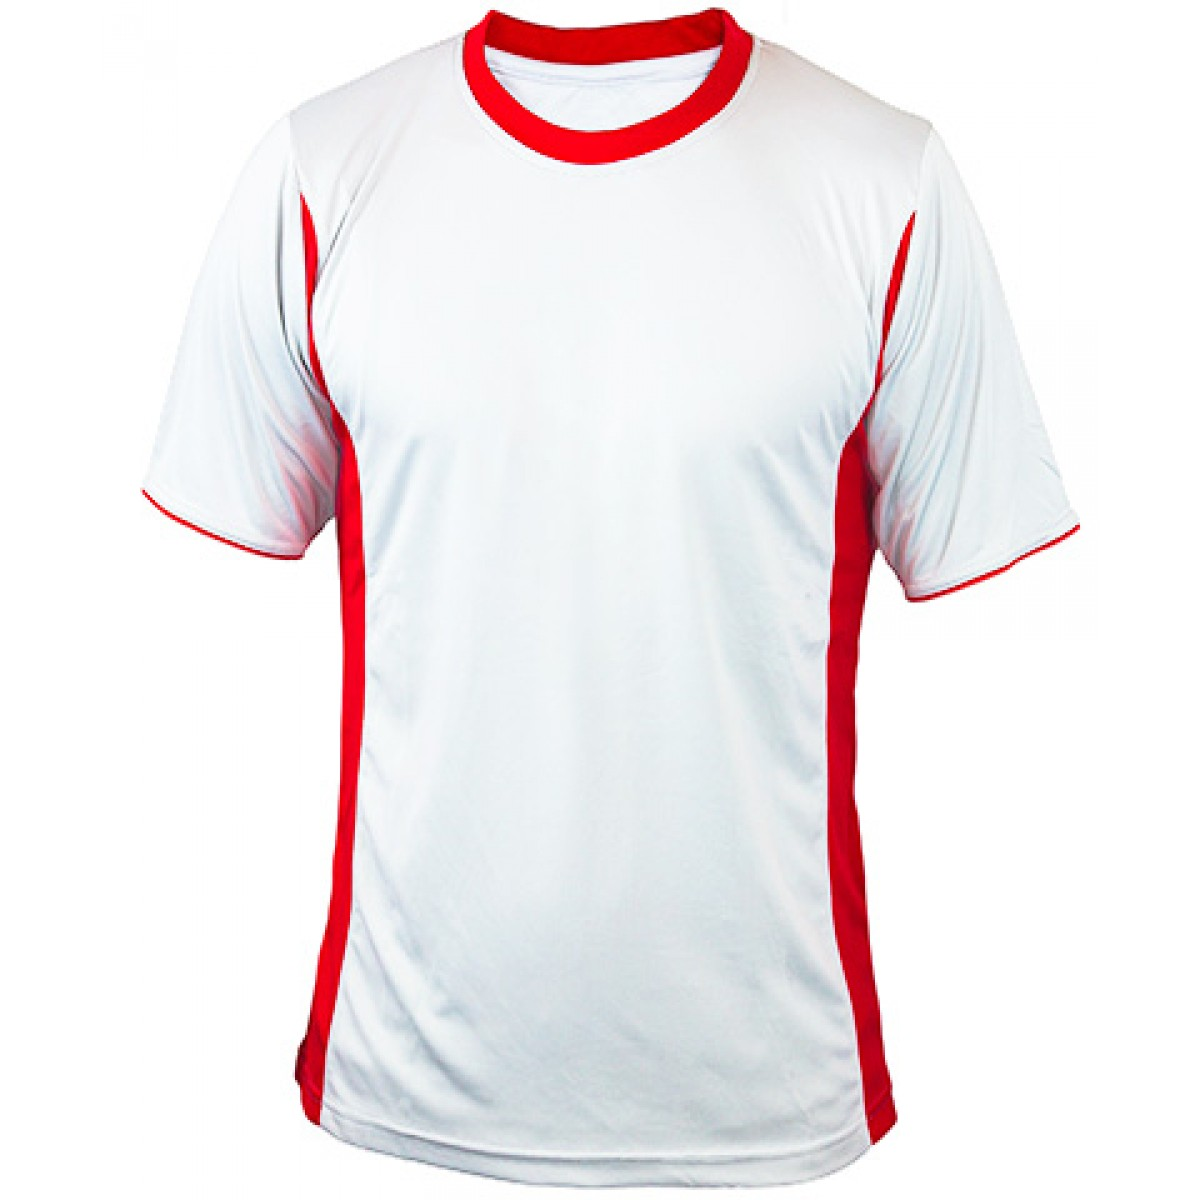 Short Sleeves Performance Fit With Side Insert-Red-M